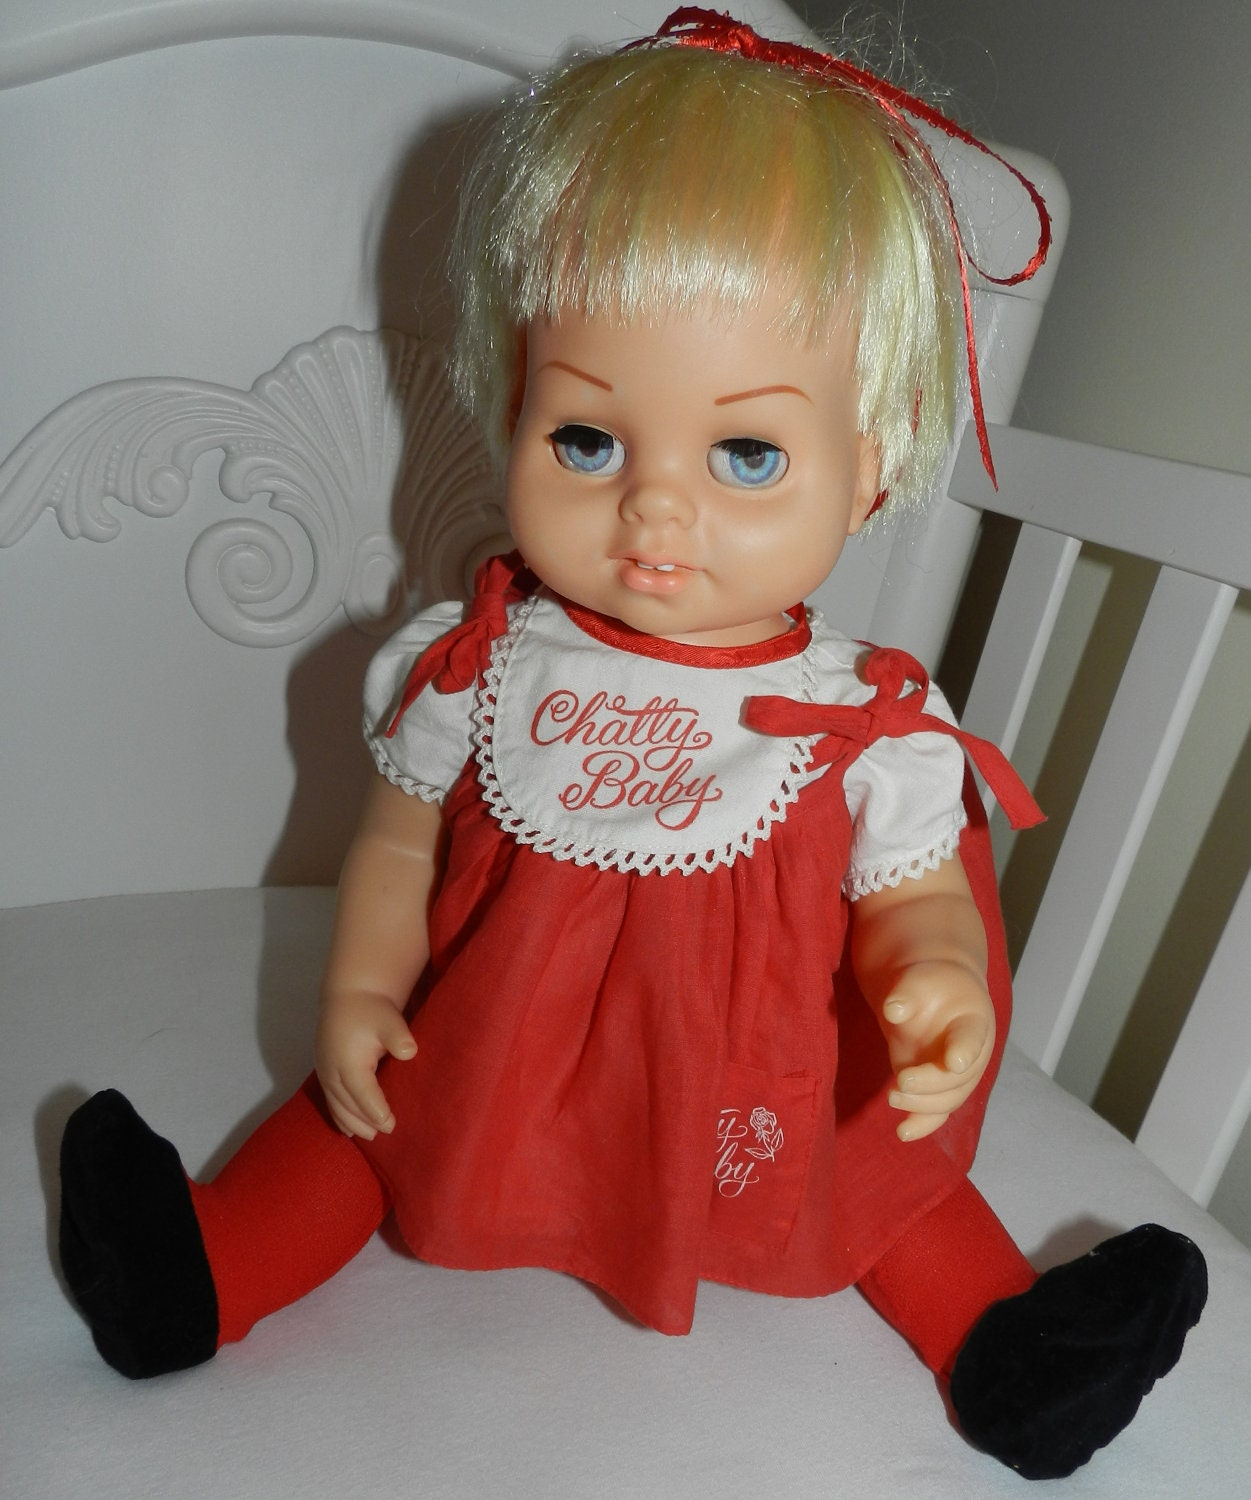 Chatty baby vintage doll chatty cathy s baby by theseahorsecottage